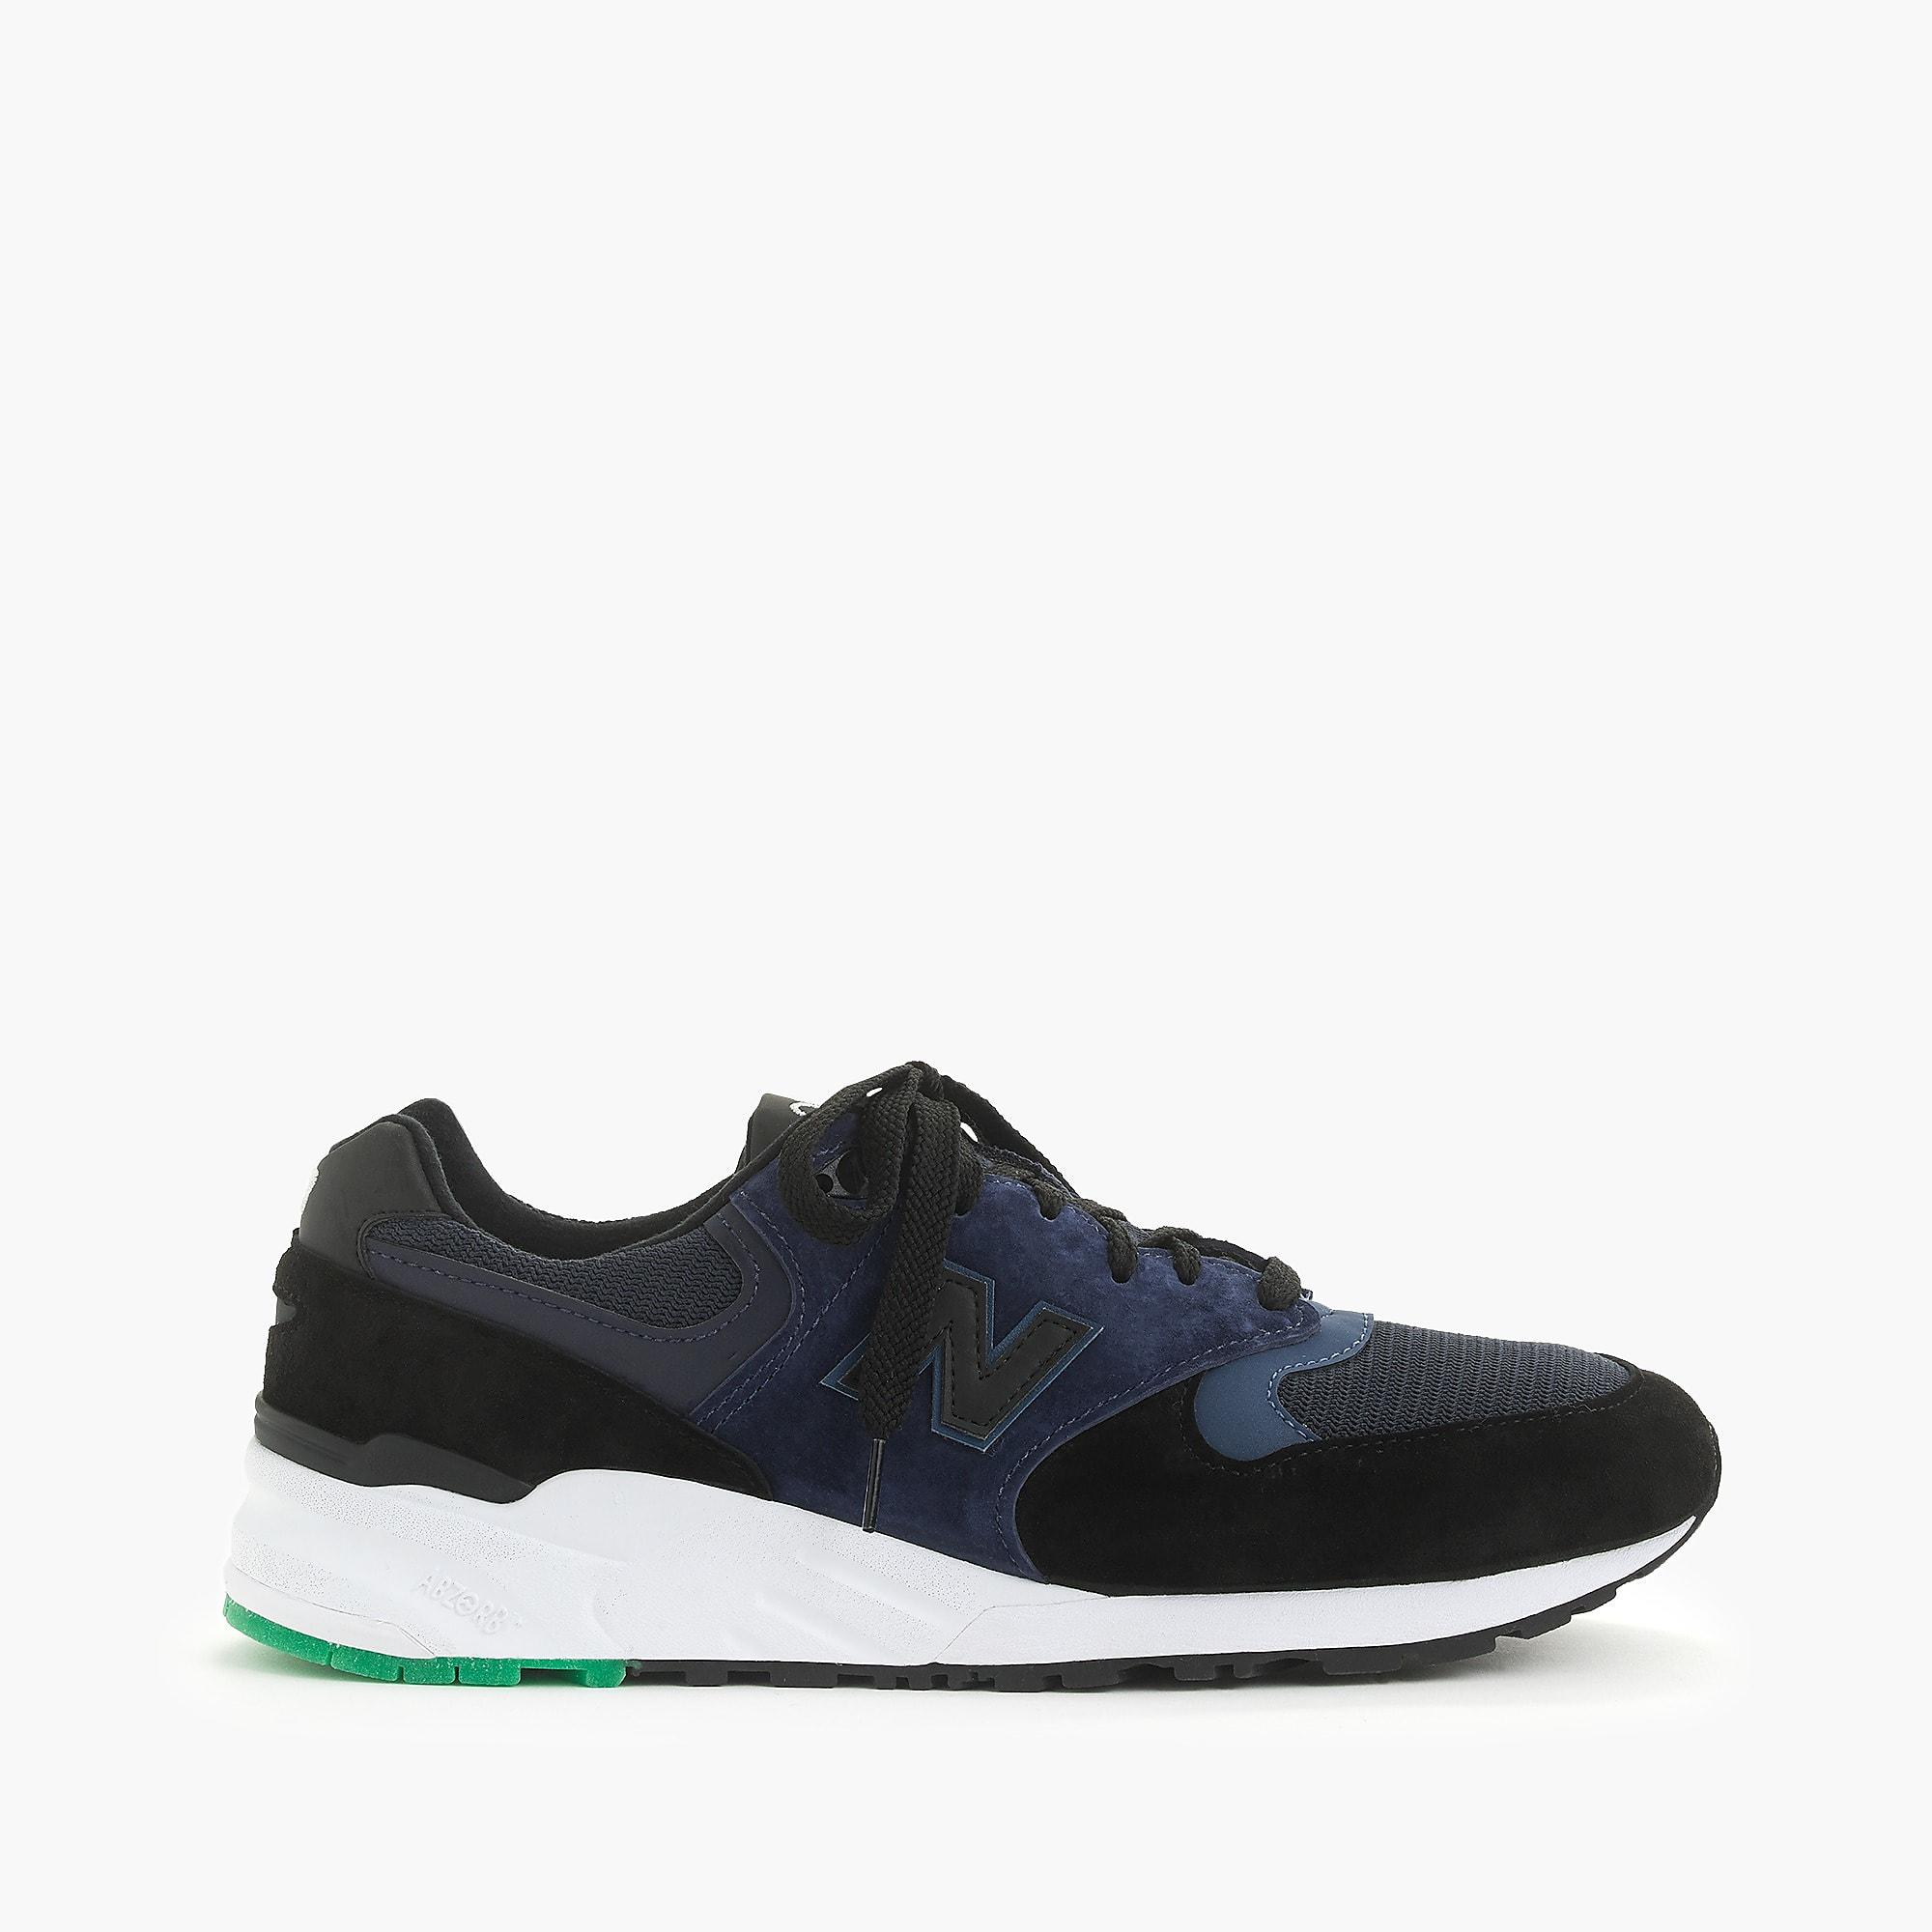 buy popular 0b920 f6dd2 New Balance - Blue X J.crew 999 Night Sky Sneakers for Men - Lyst. View  fullscreen